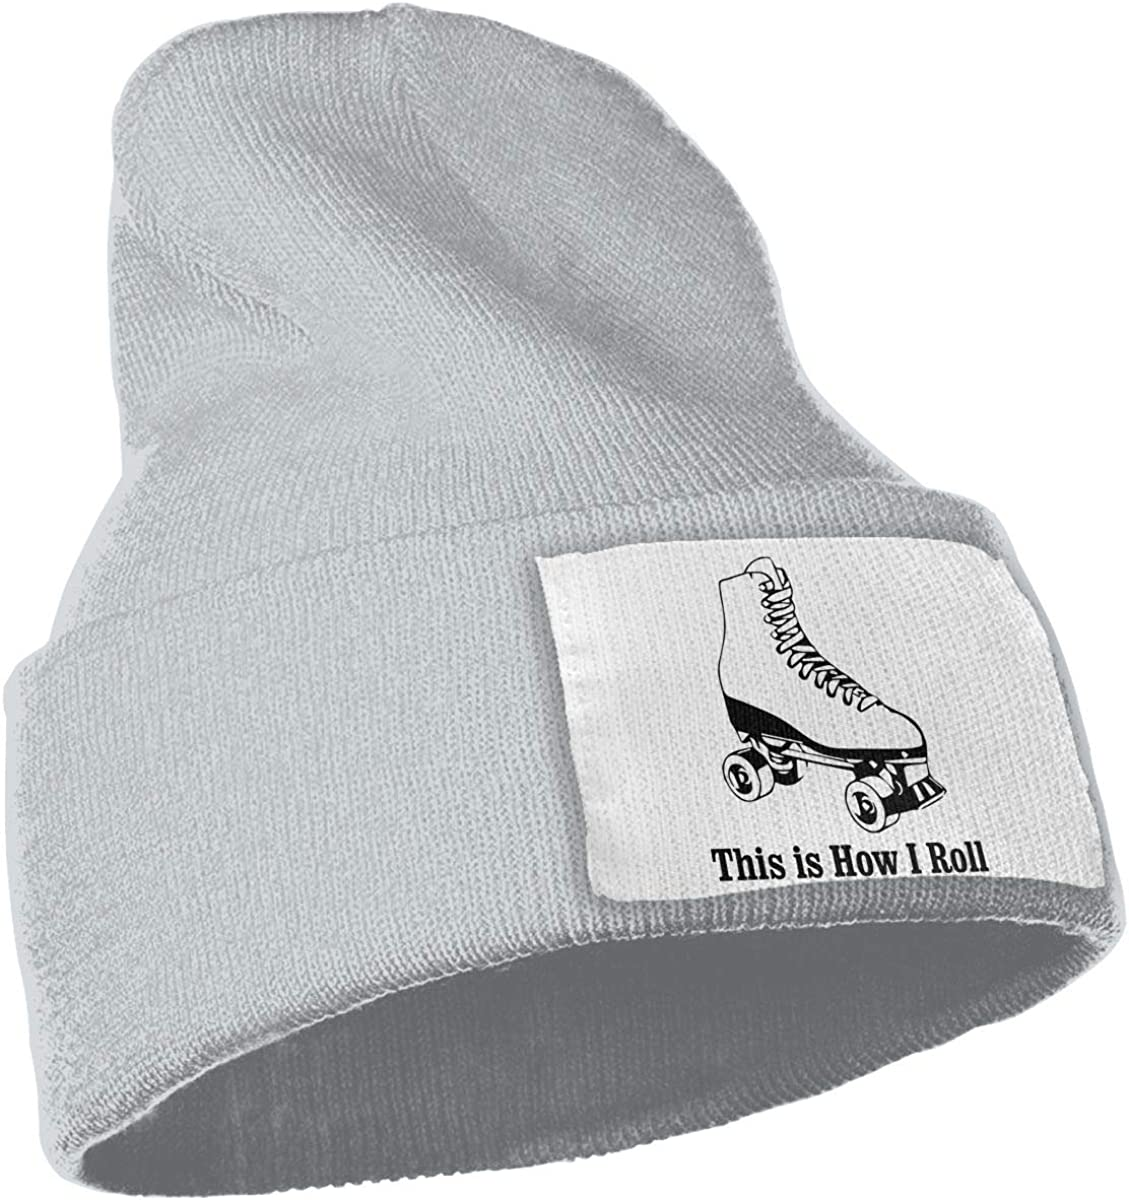 TAOMAP89 This is How I Roll Roller Skates Women and Men Skull Caps Winter Warm Stretchy Knit Beanie Hats